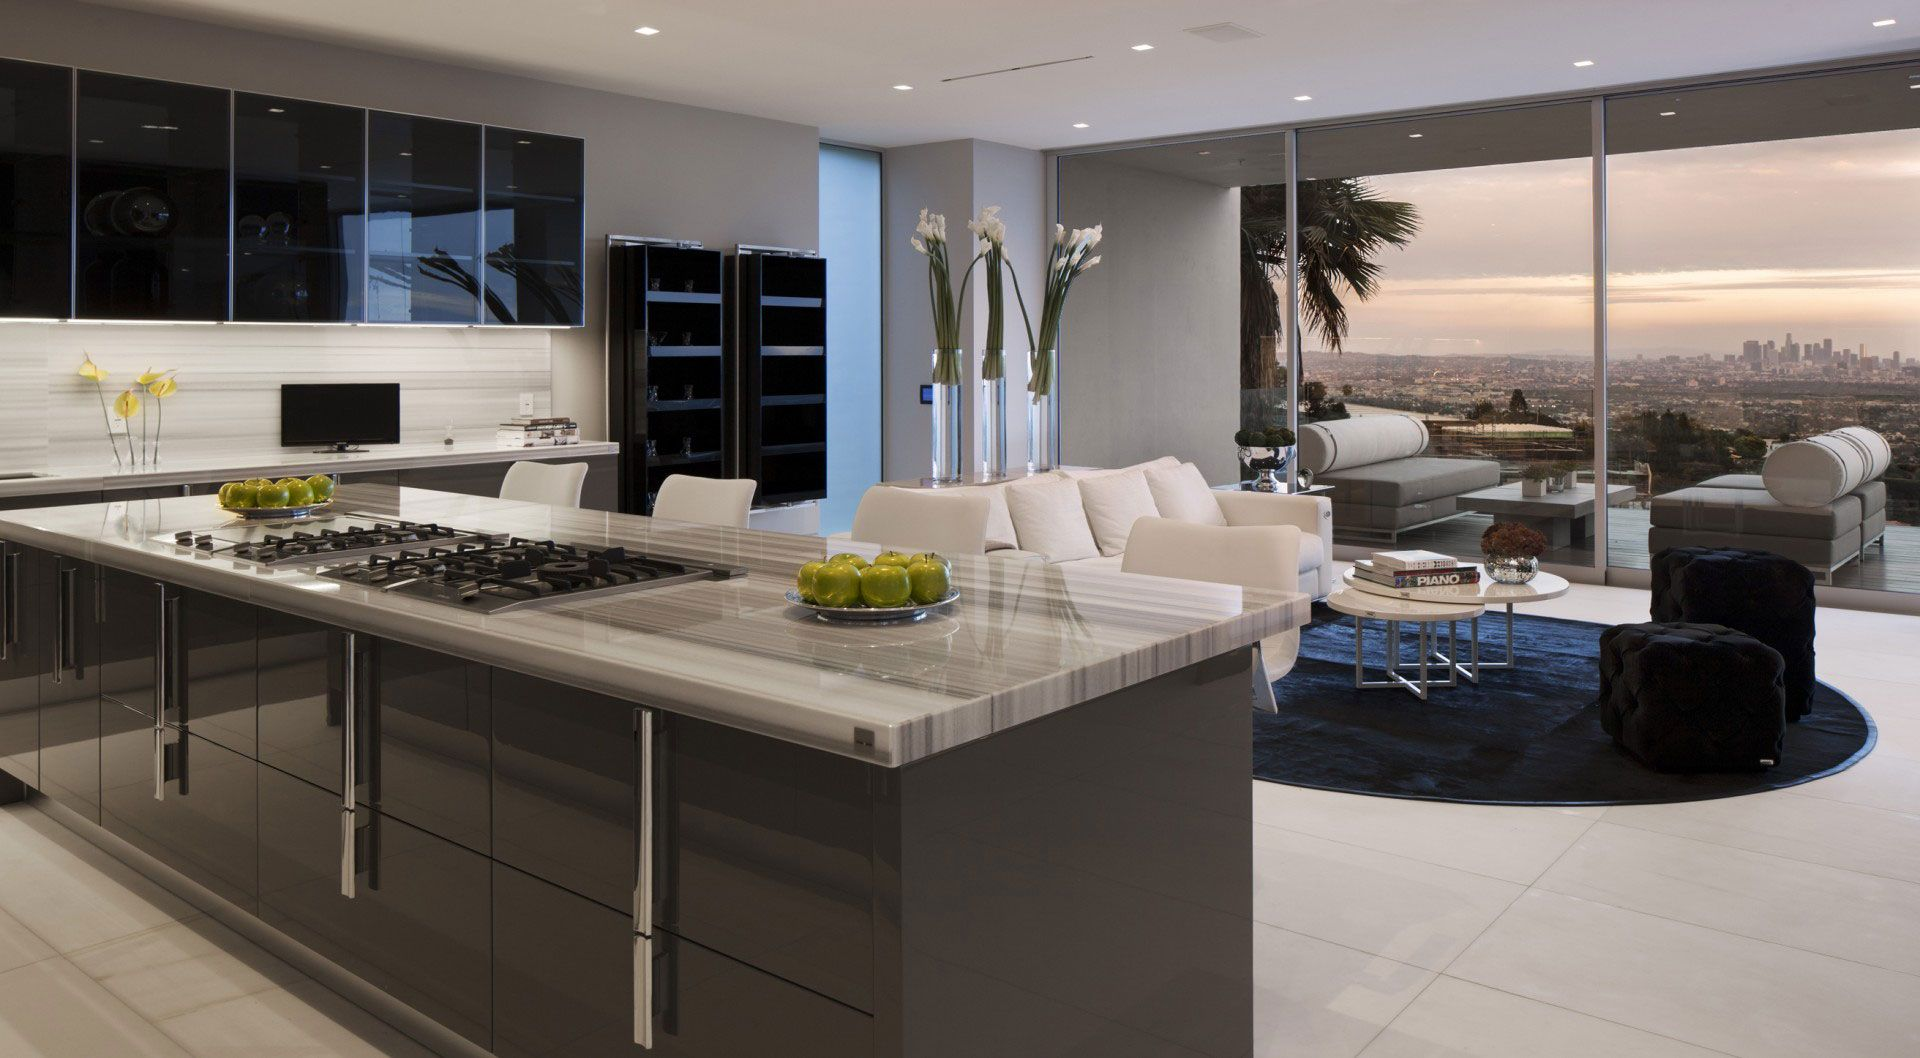 Luxury Modern Kitchens Grey Marble Or Granite Google Search Luxury Modern Kitchen Design